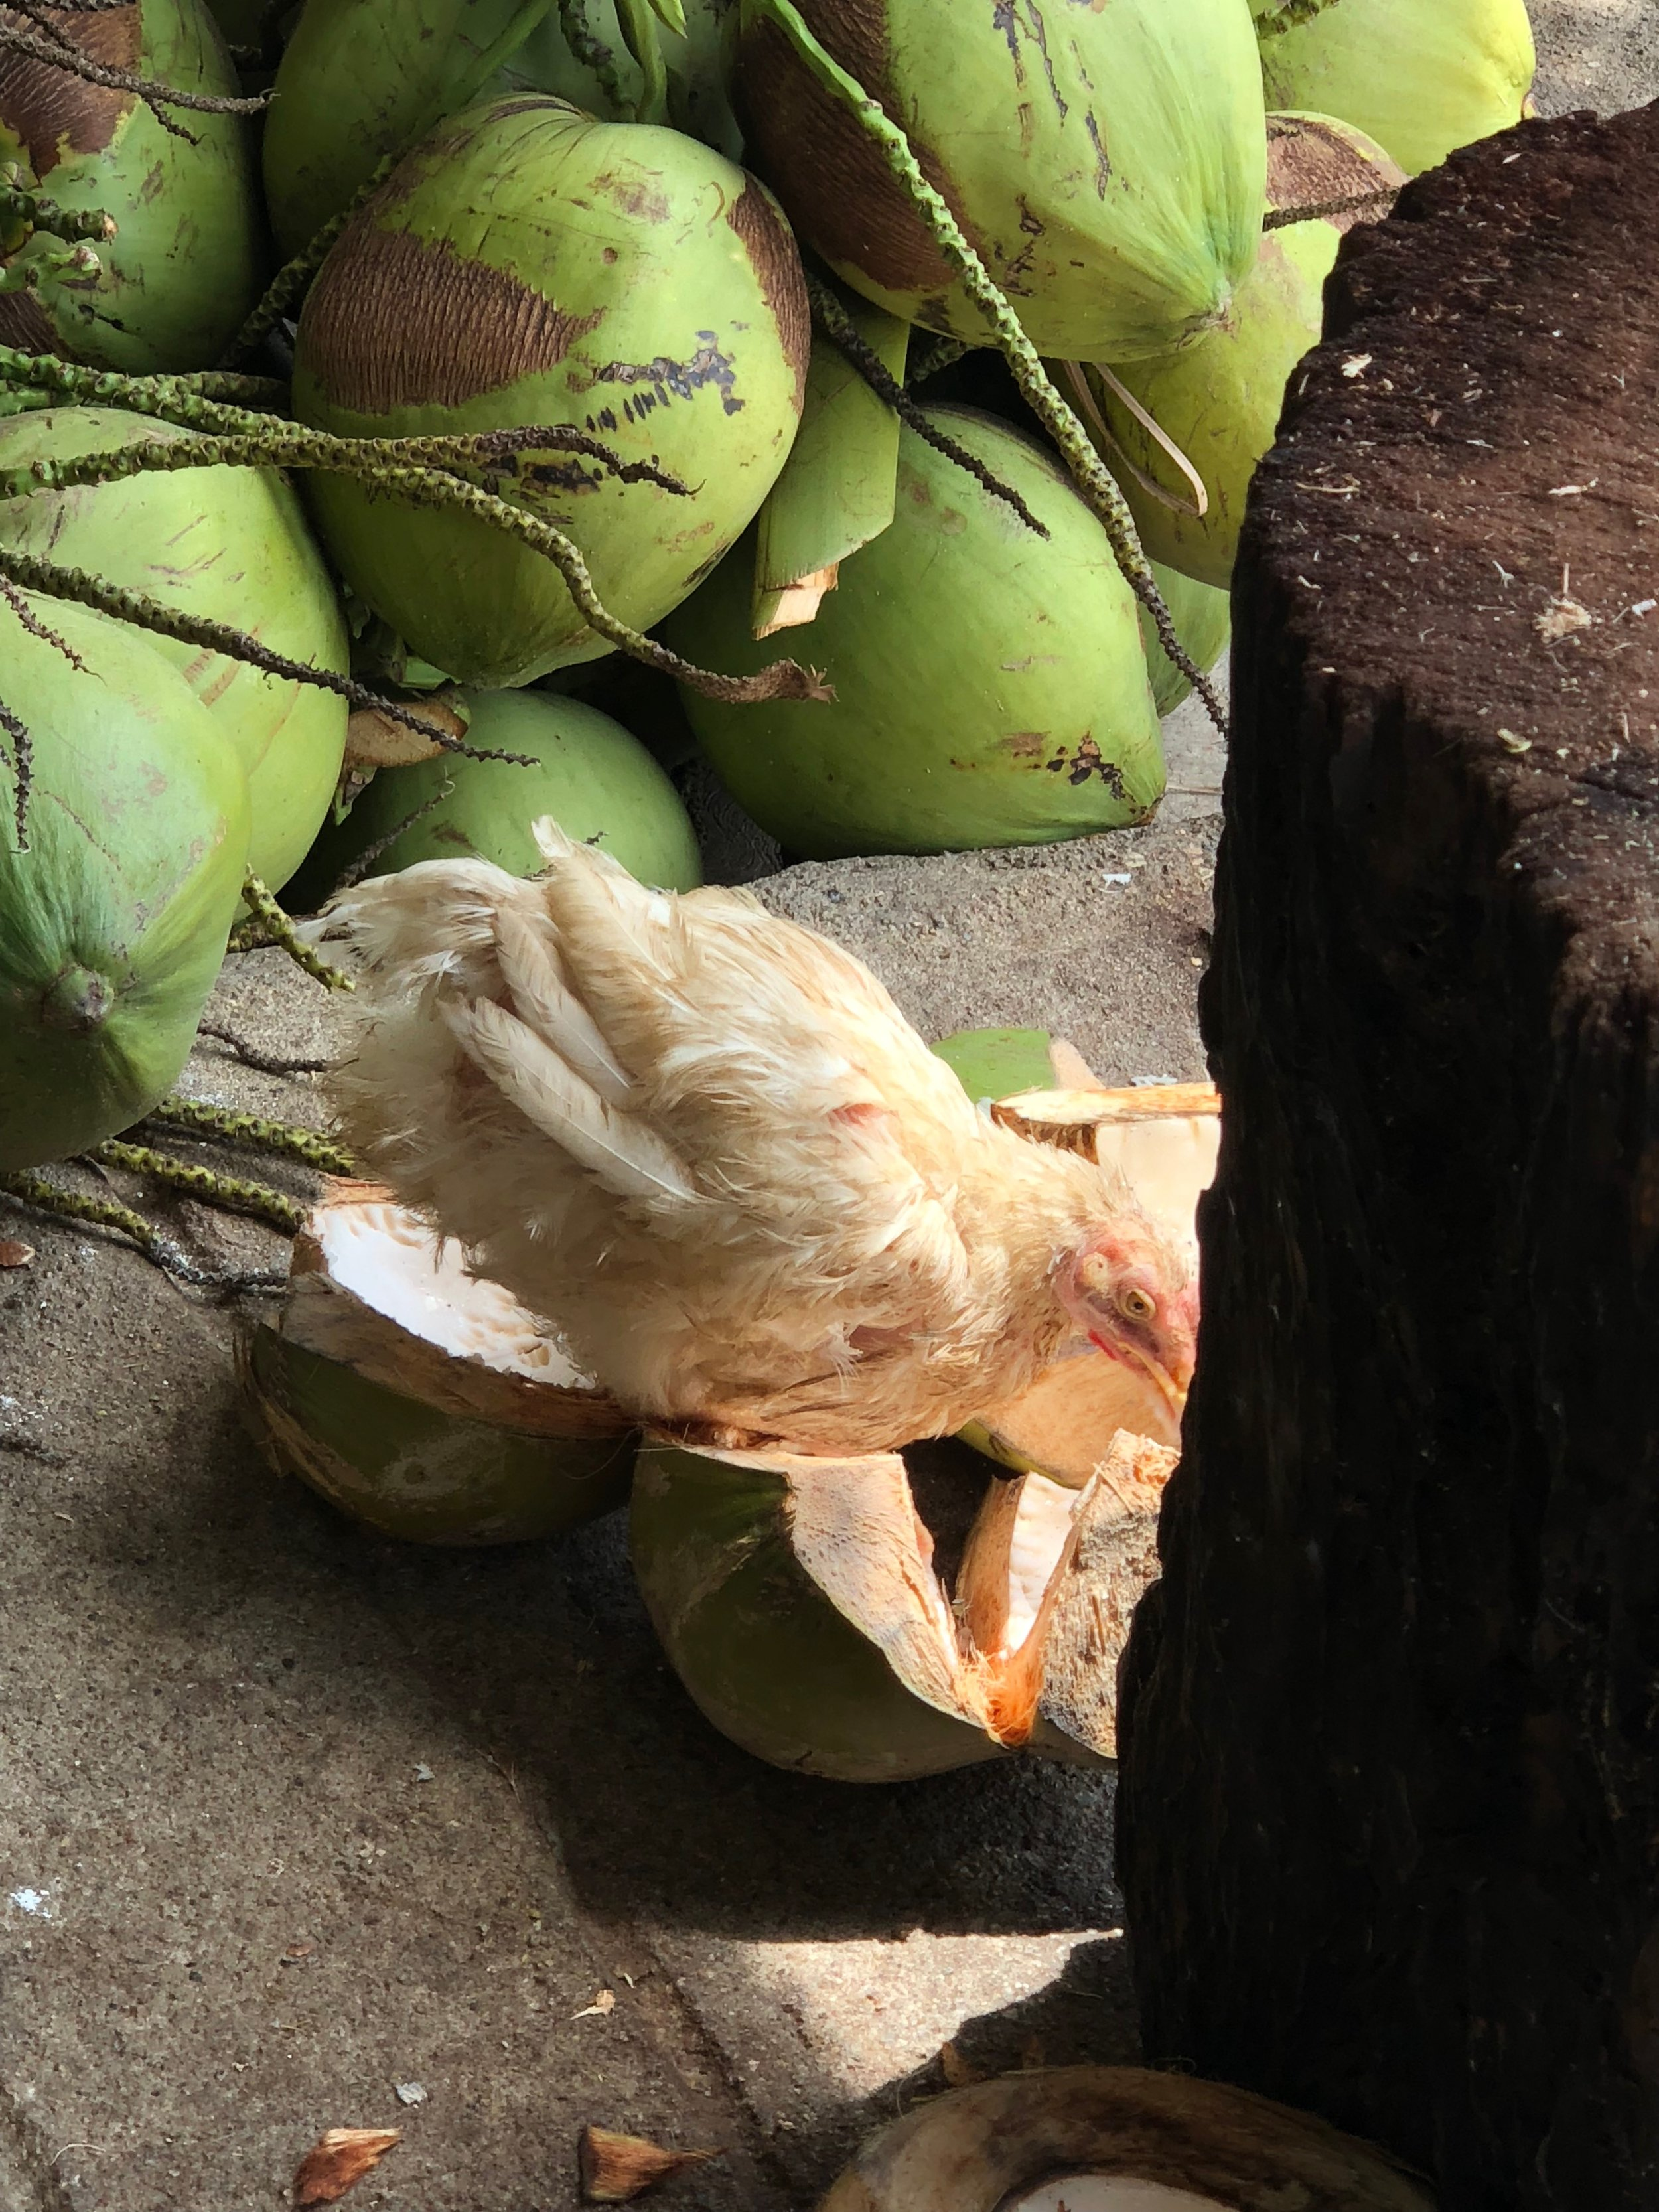 One of Ninfa's happy chickens picking at the coconut remnants left behind. That is extreme free range. Nothing wasted. The coconuts are composted on the side of her house and as they dry can be used as kindling for cooking over open fire.